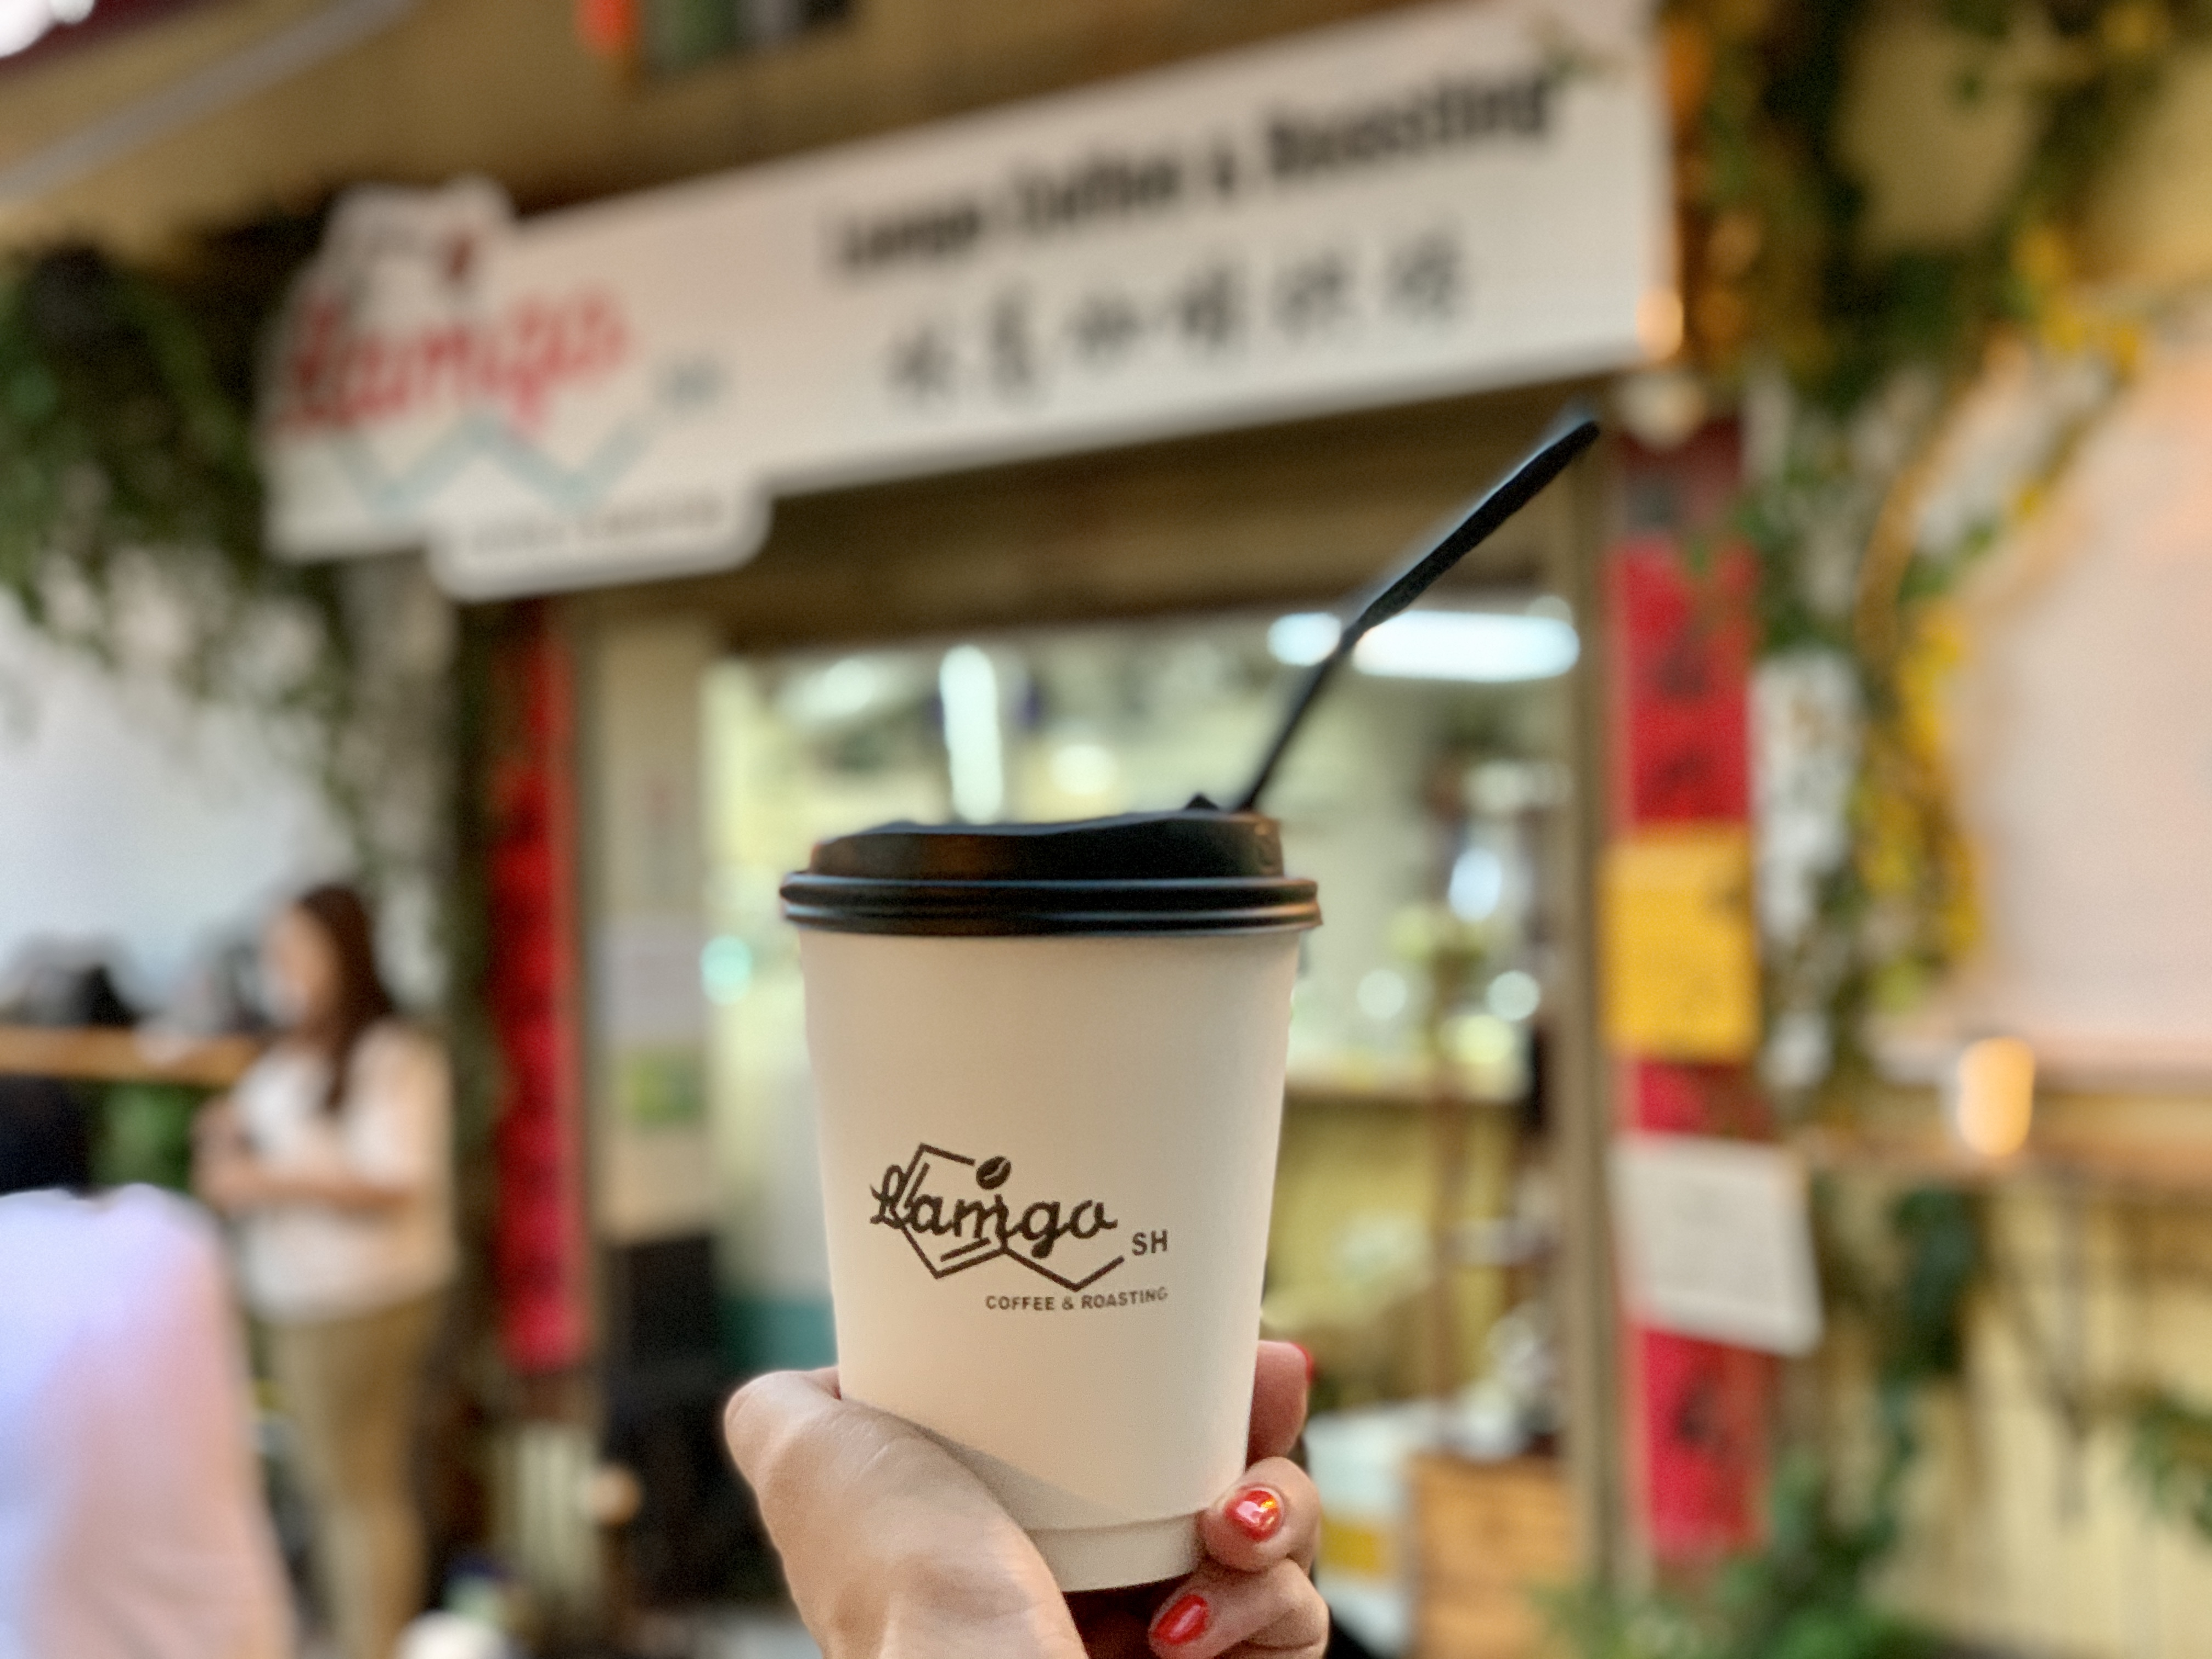 Lamgo Coffee Cup Macau Lifestyle